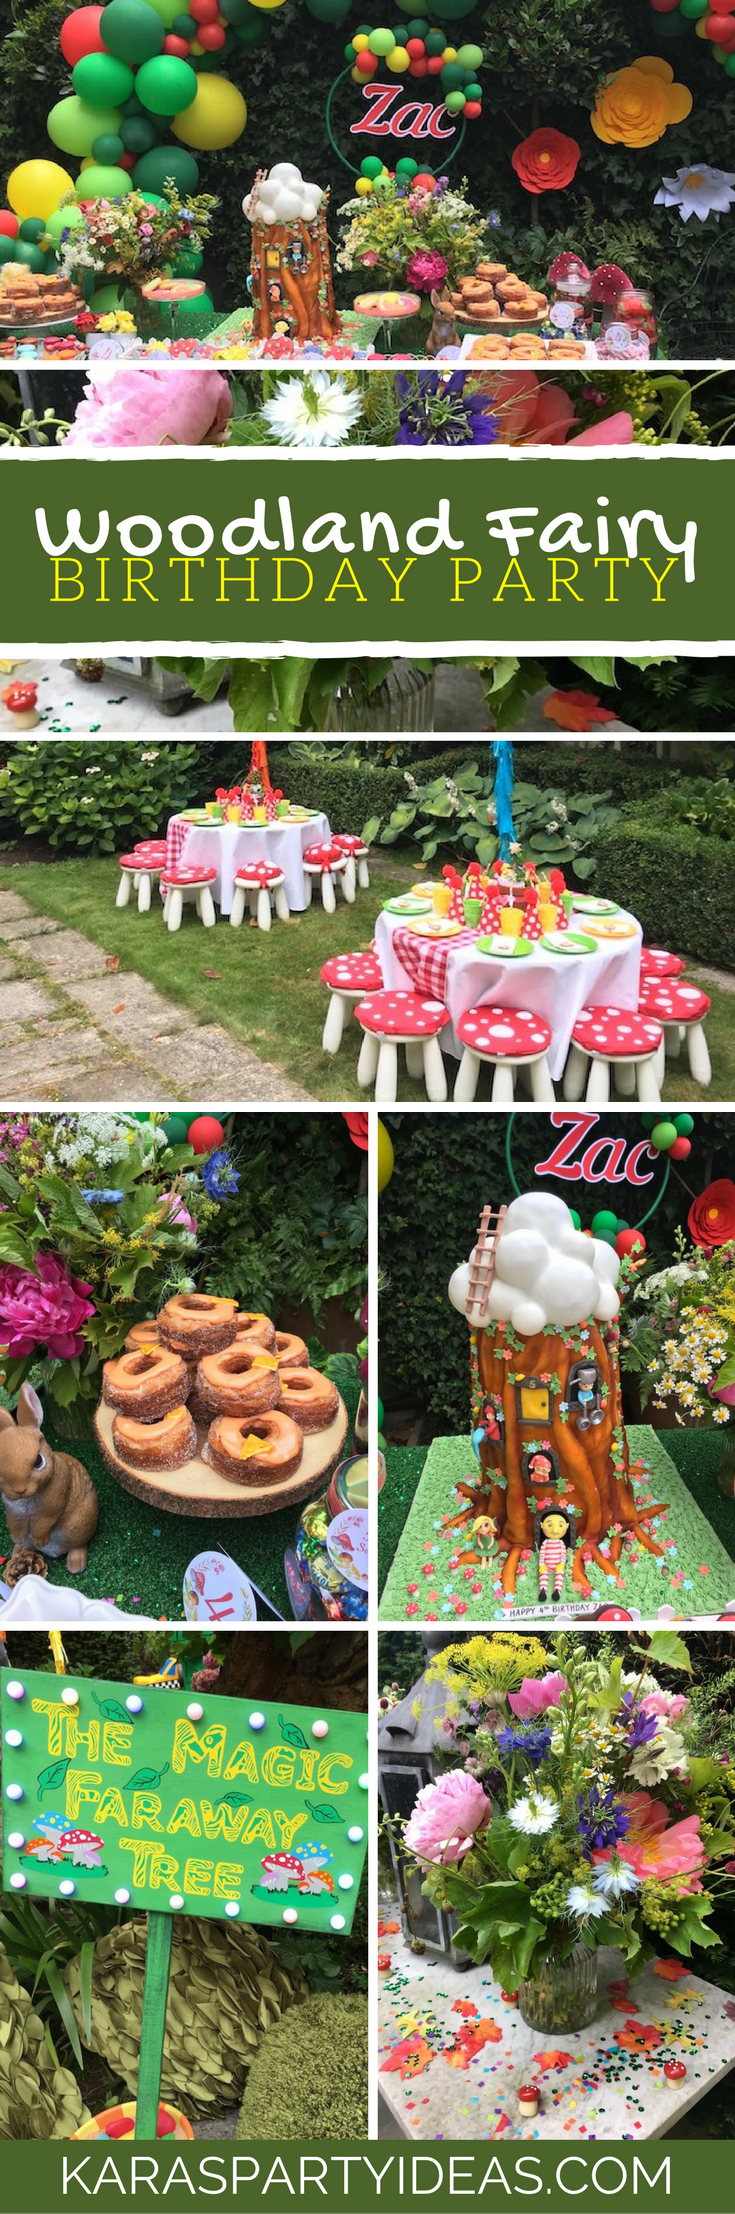 Woodland Fairy Birthday Party via Kara's Party Ideas - KarasPartyIdeas.com (1)